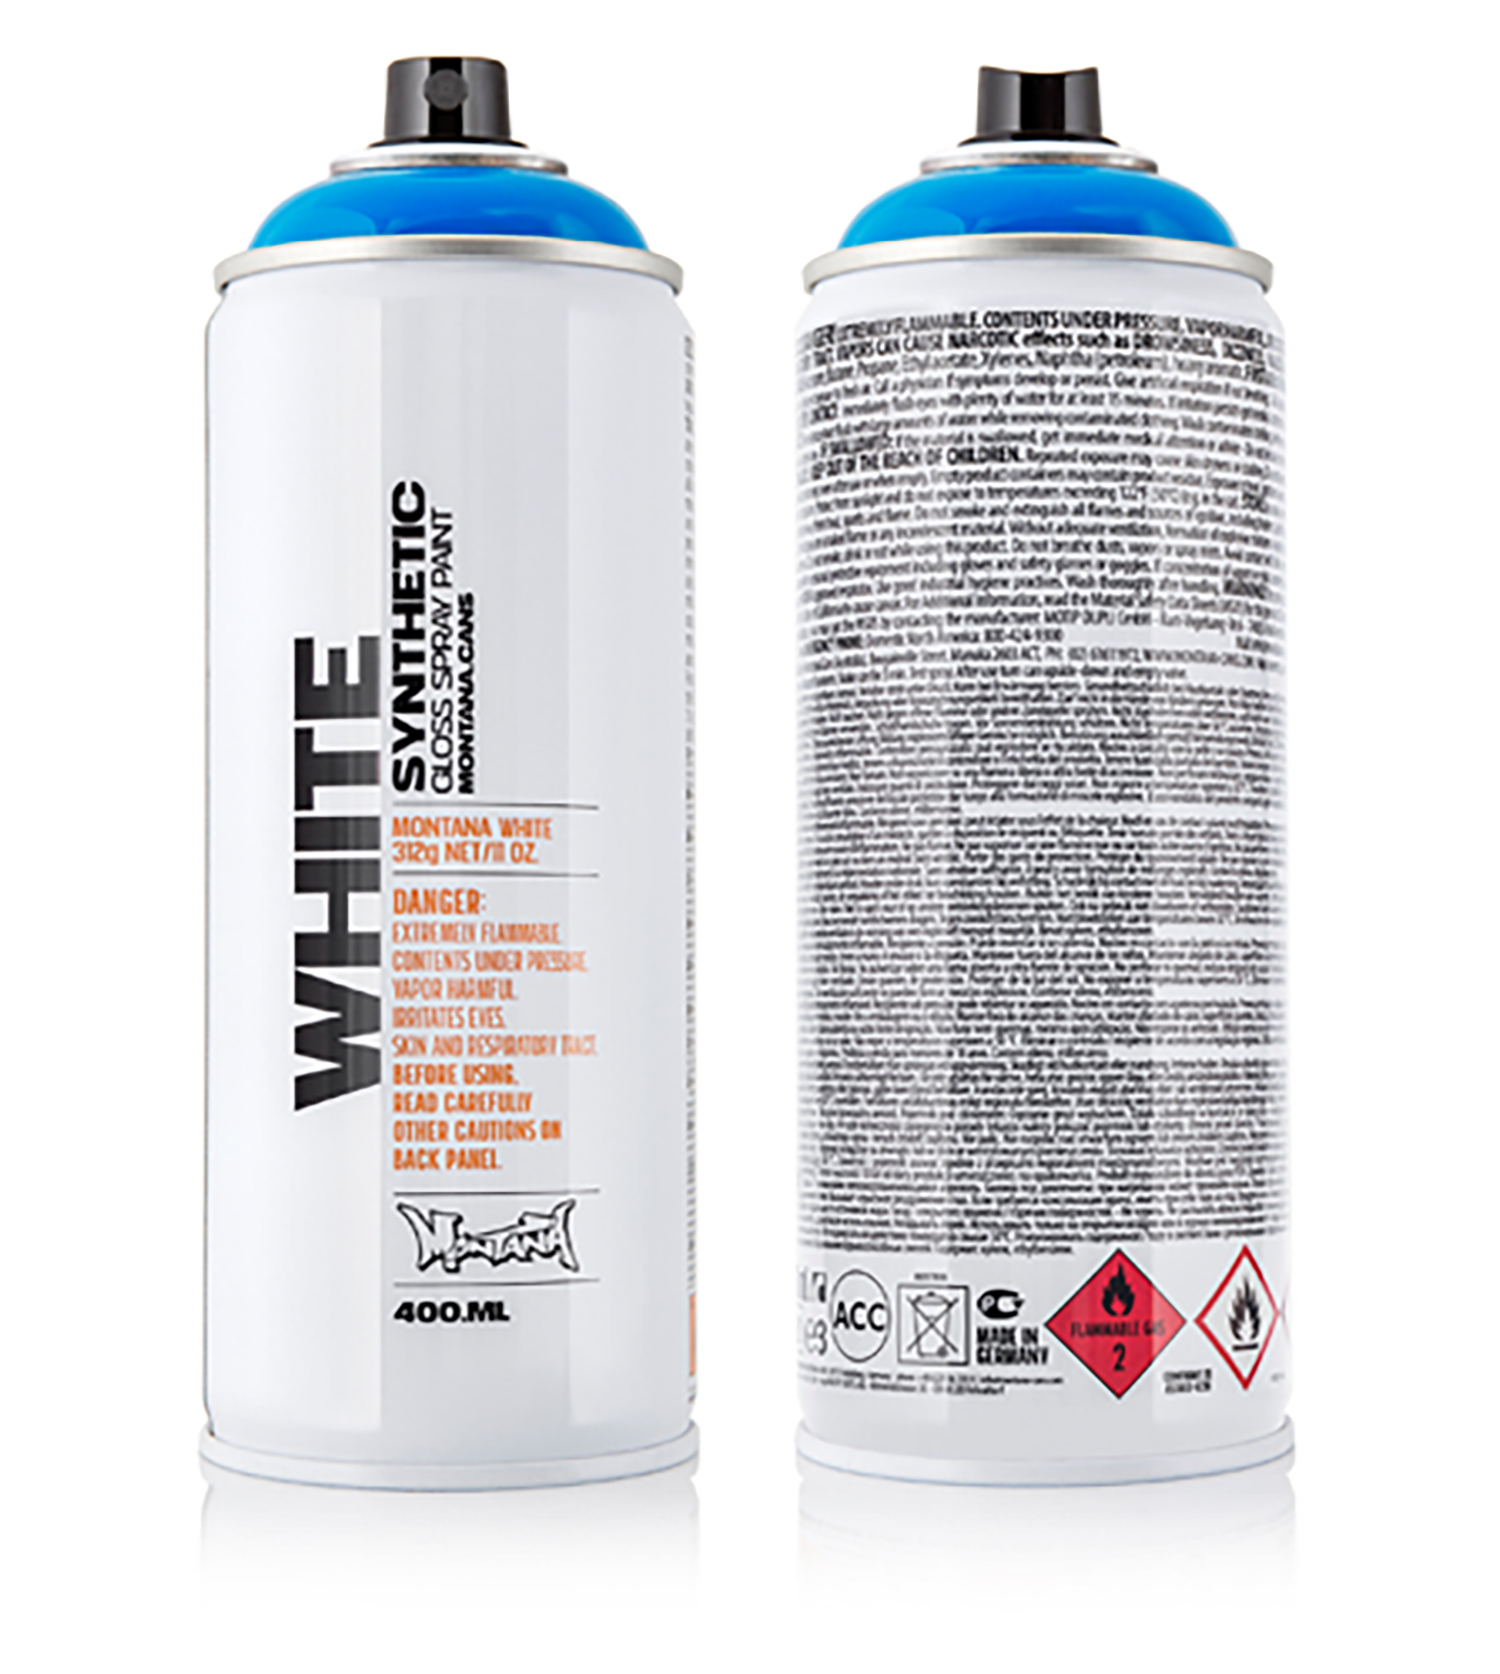 MONTANA-WHITE-SPRAY-400ML-5040